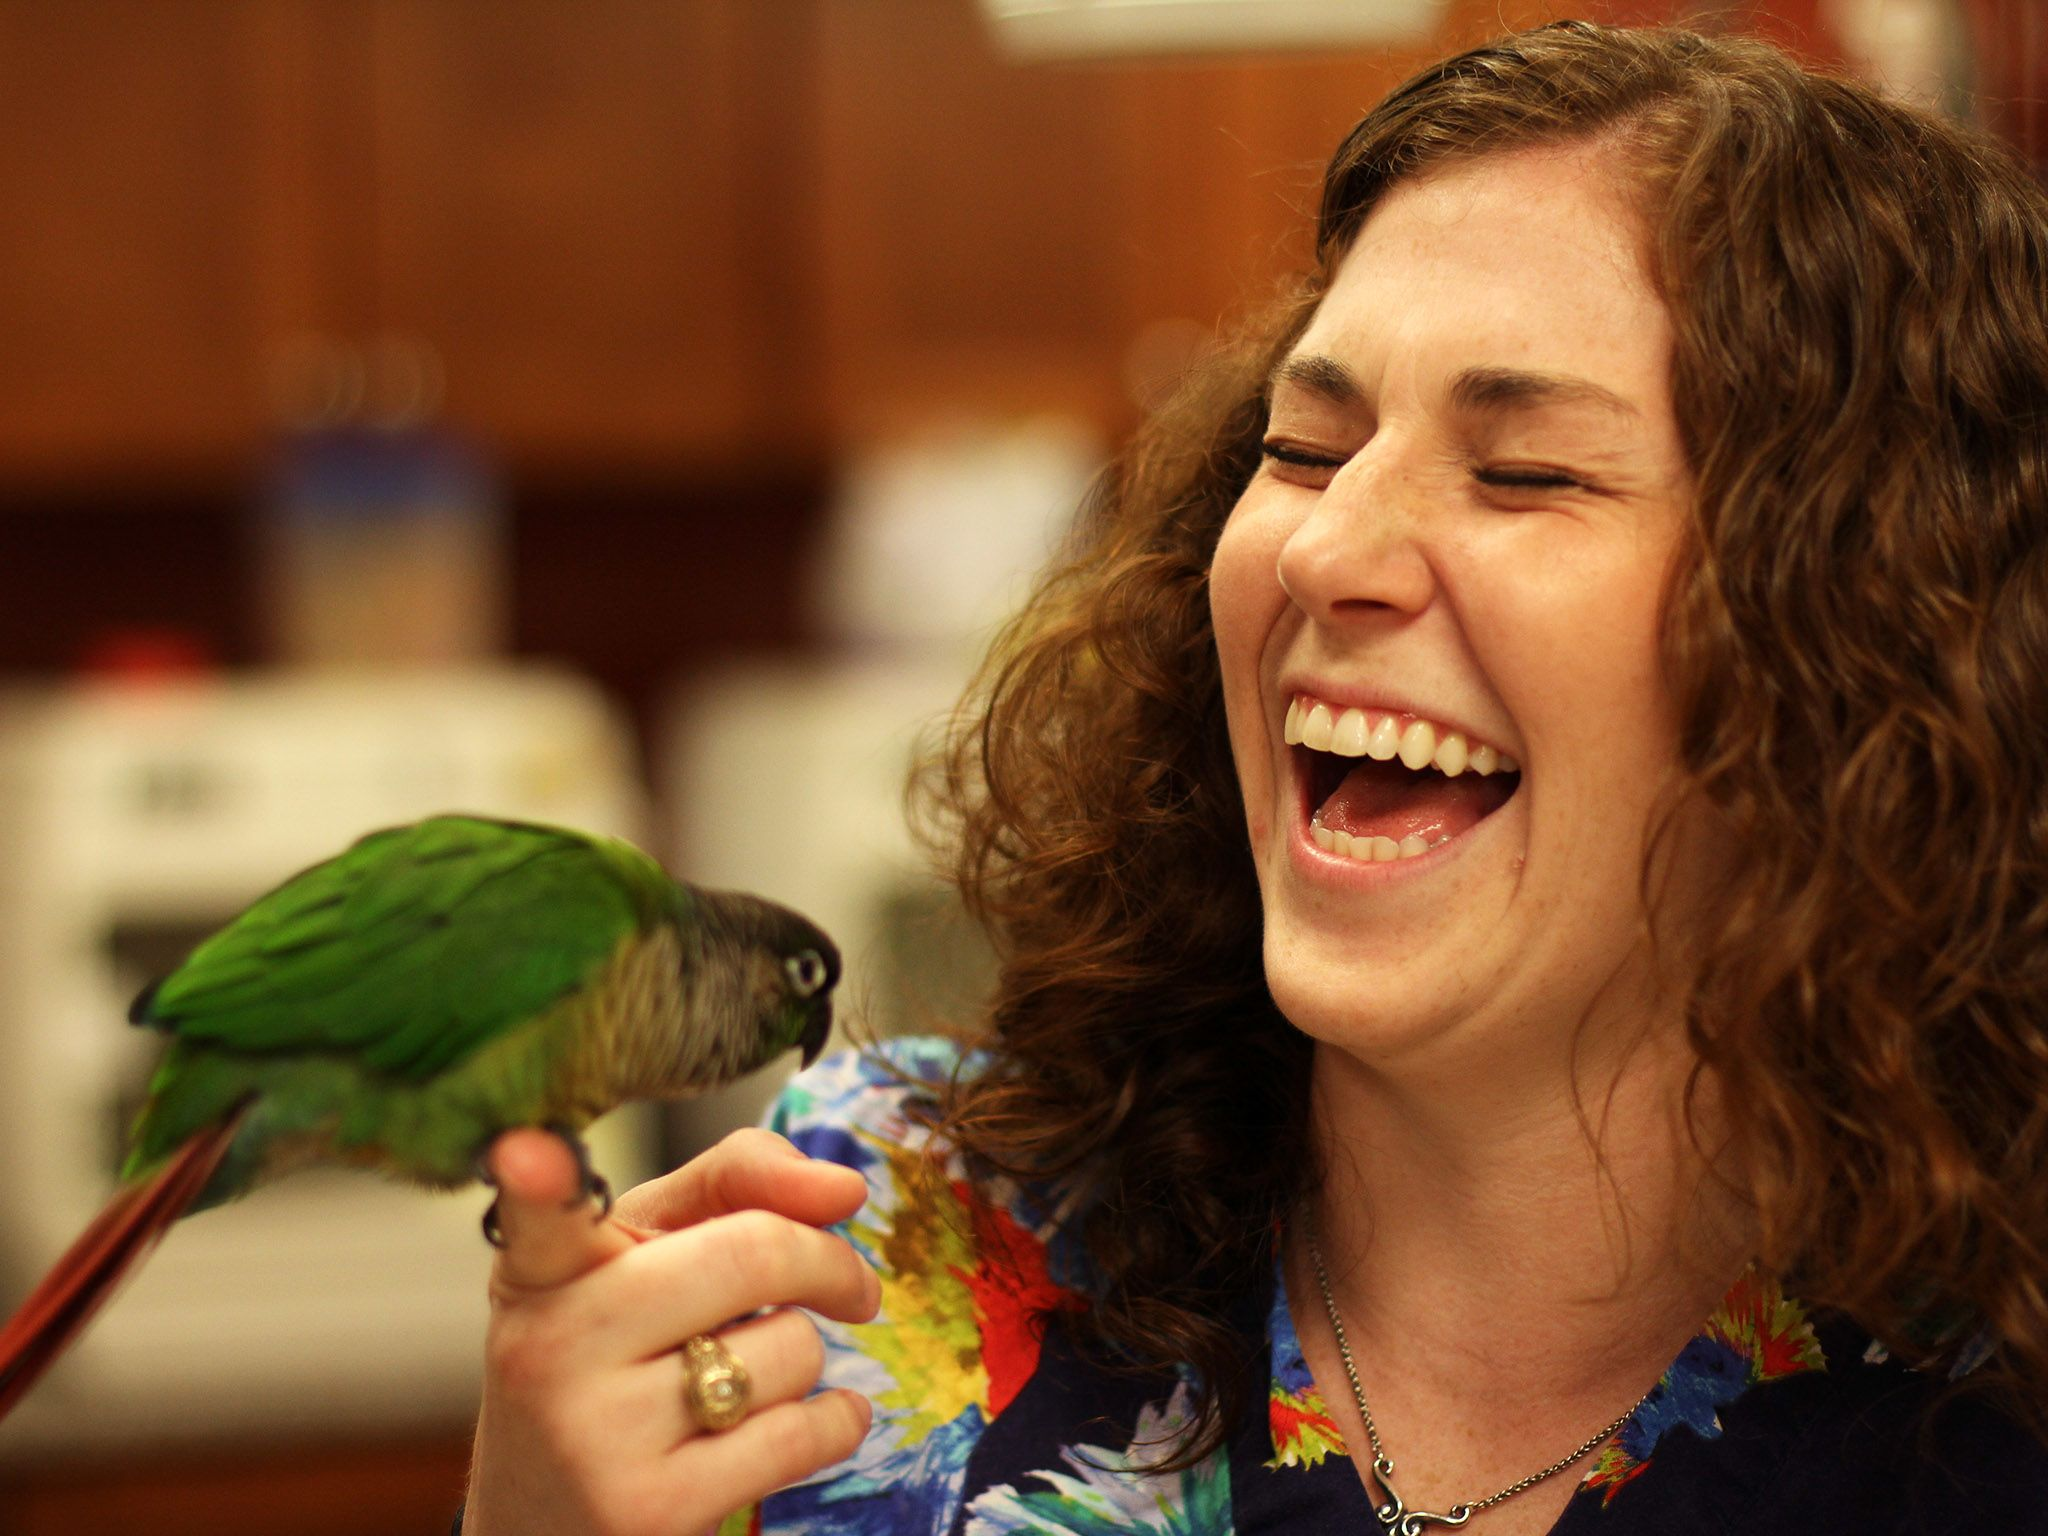 Dr. Lauren Thielen has always had an interest in exotic animals. She worked as a veterinary techn... [Photo of the day - October, 2014]